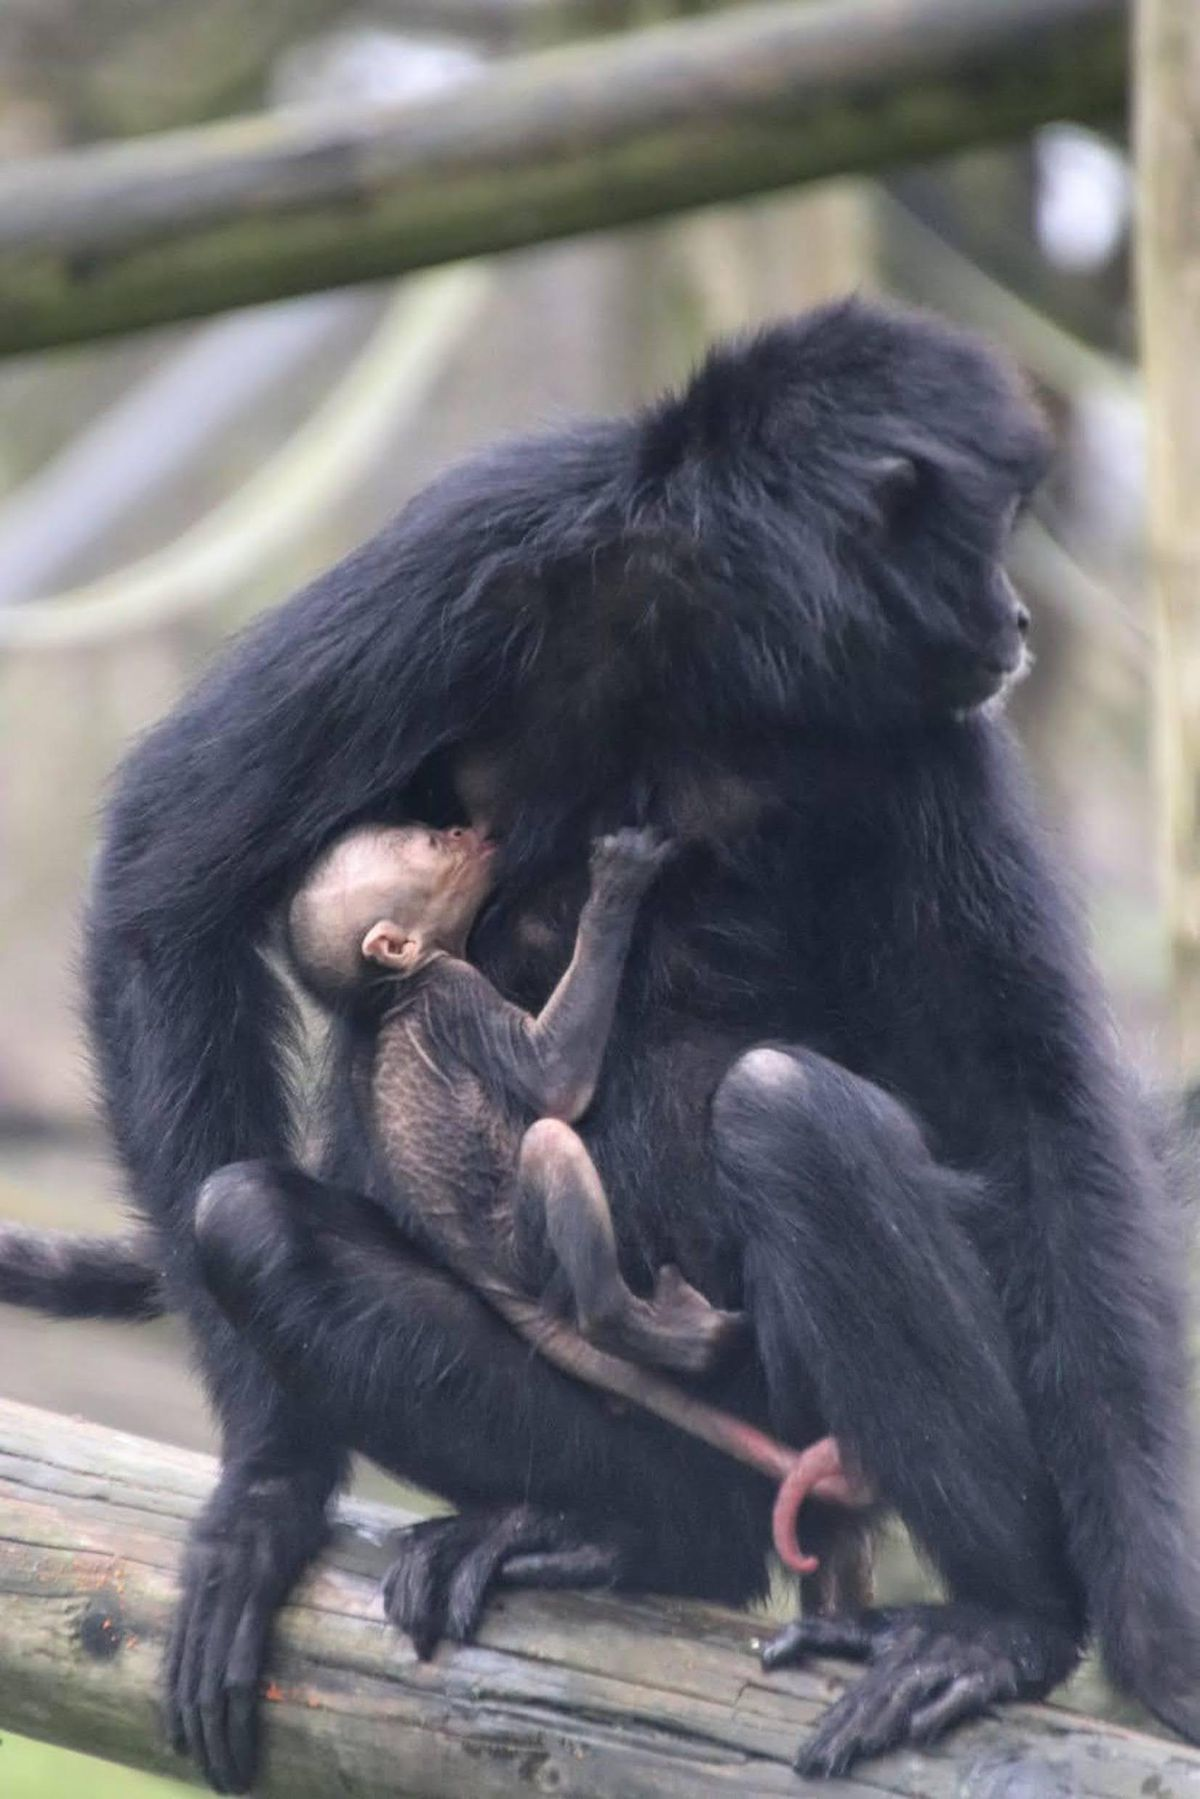 The critically endangered Columbian black spider monkey baby was born at Dudley Zoo and Castle last week